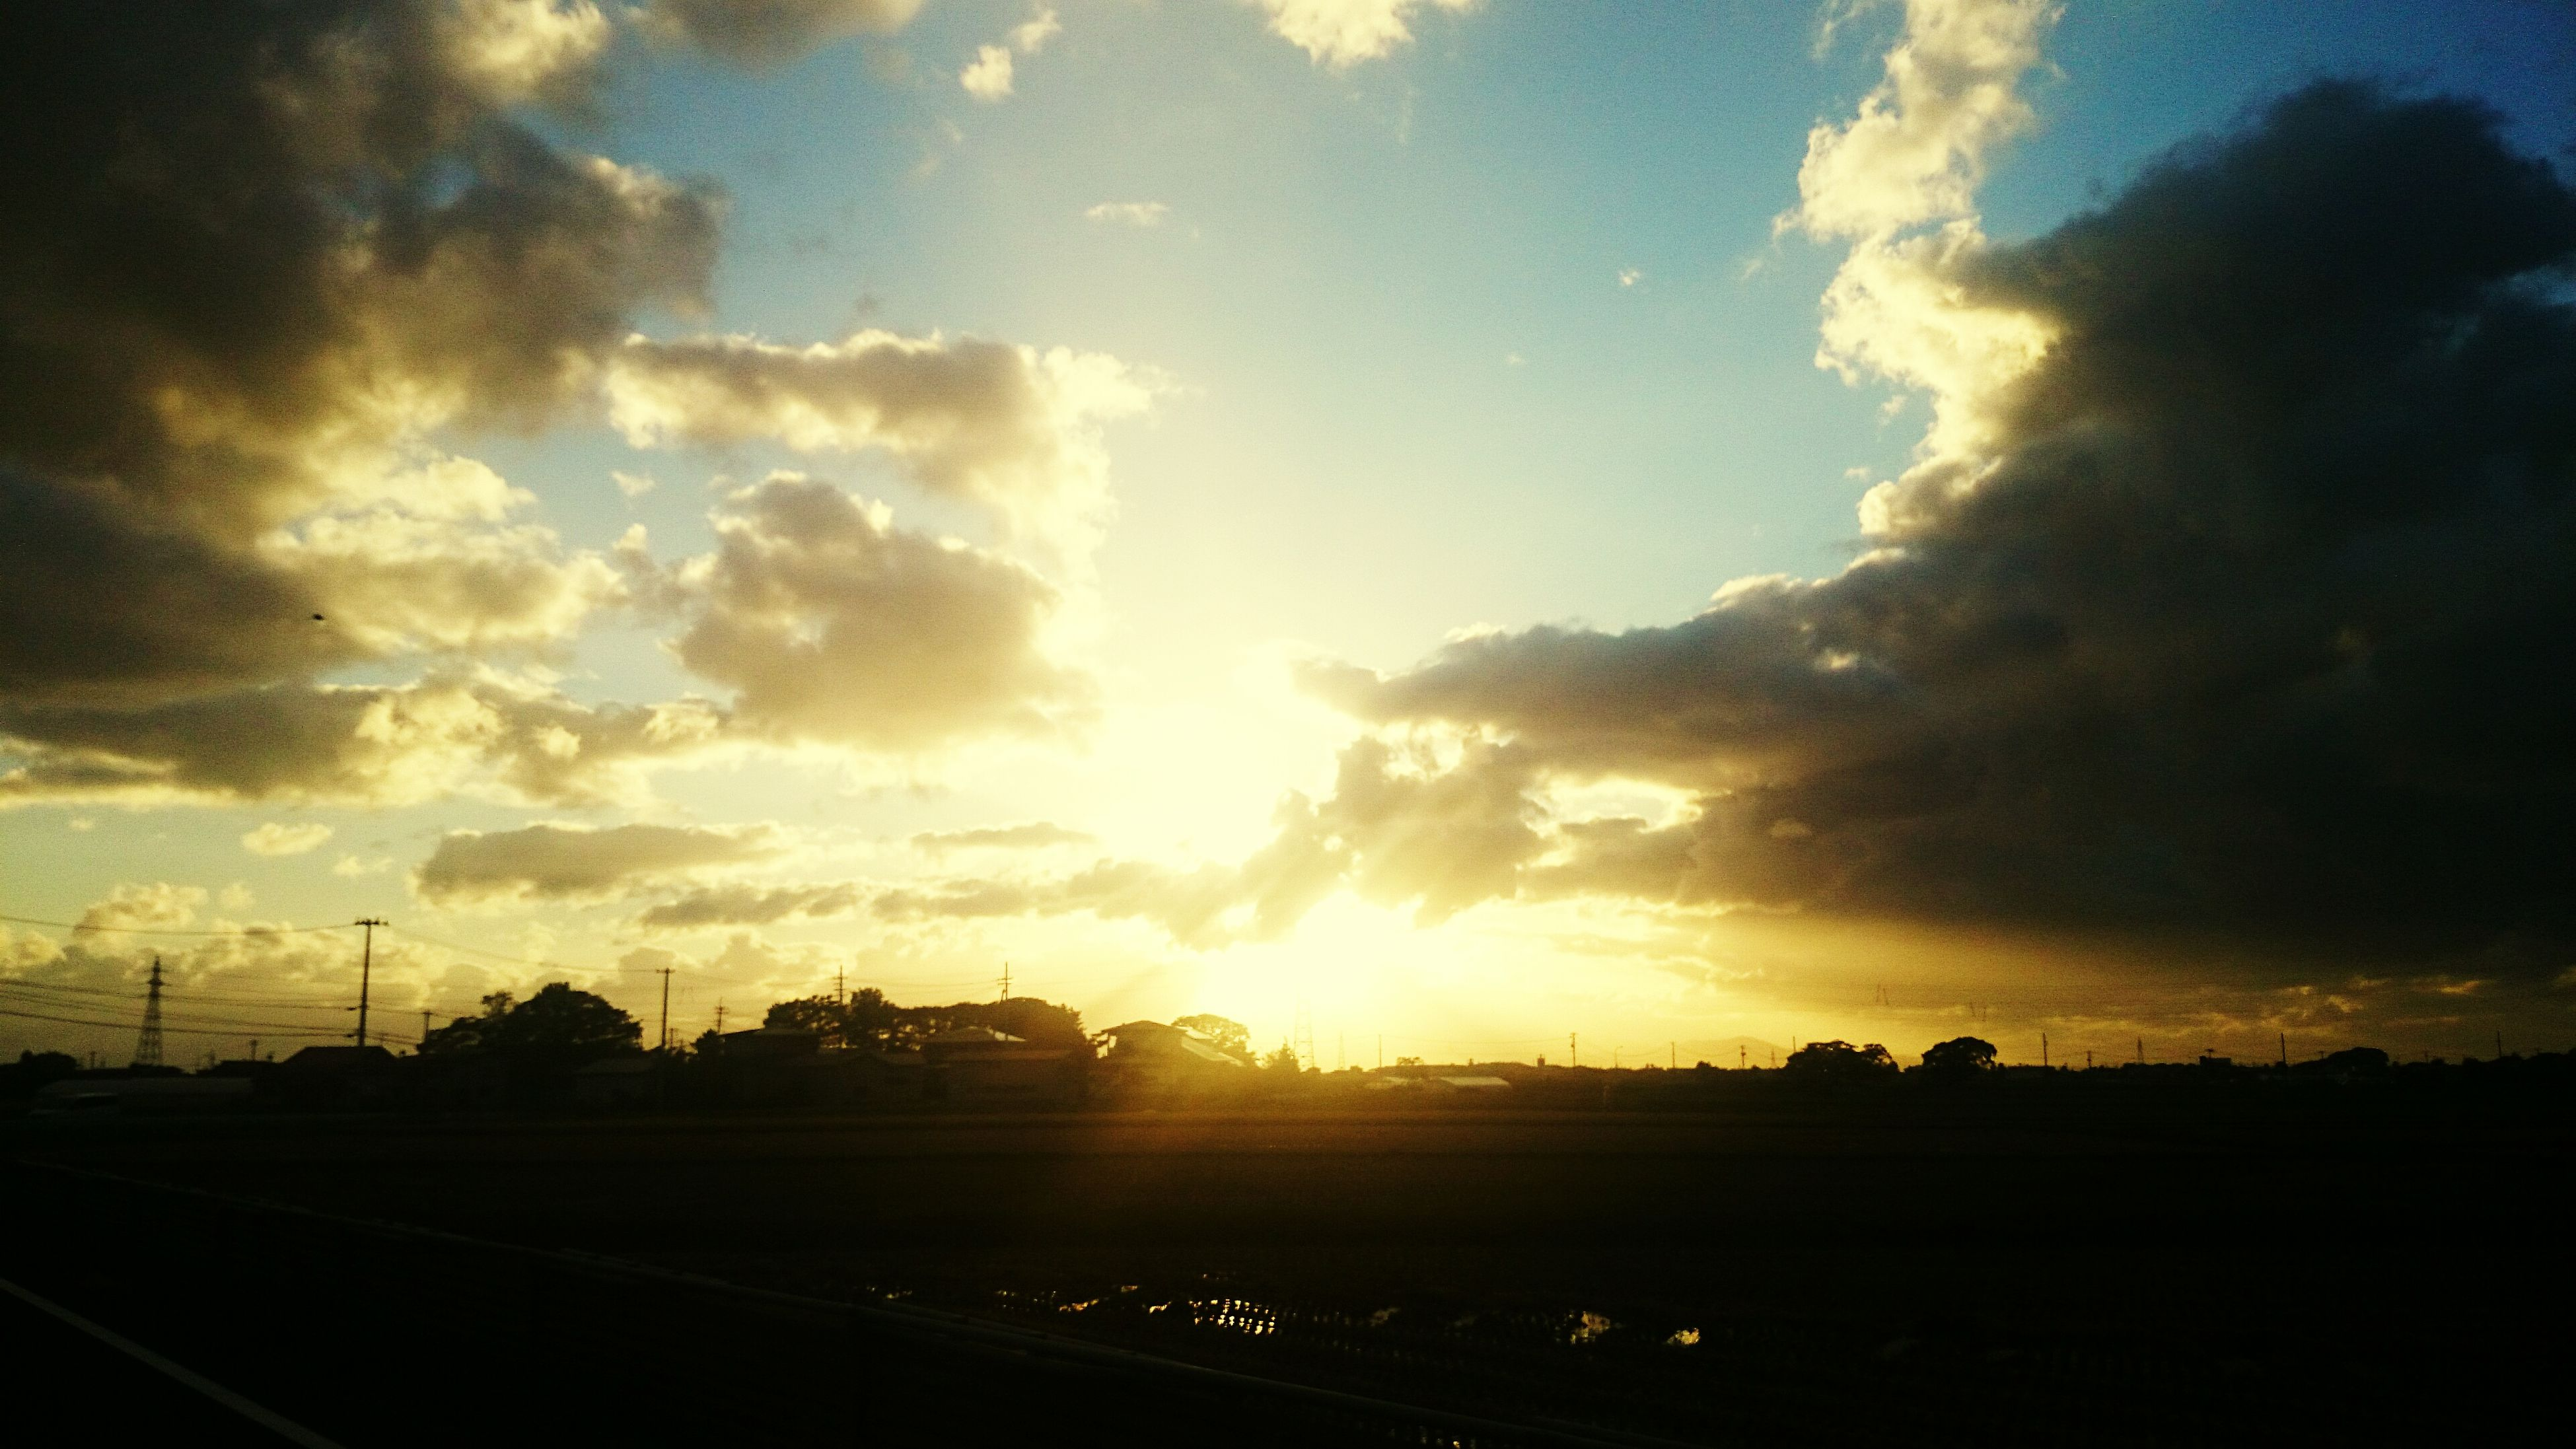 sky, sunset, cloud - sky, silhouette, nature, beauty in nature, scenics, outdoors, sun, no people, tree, day